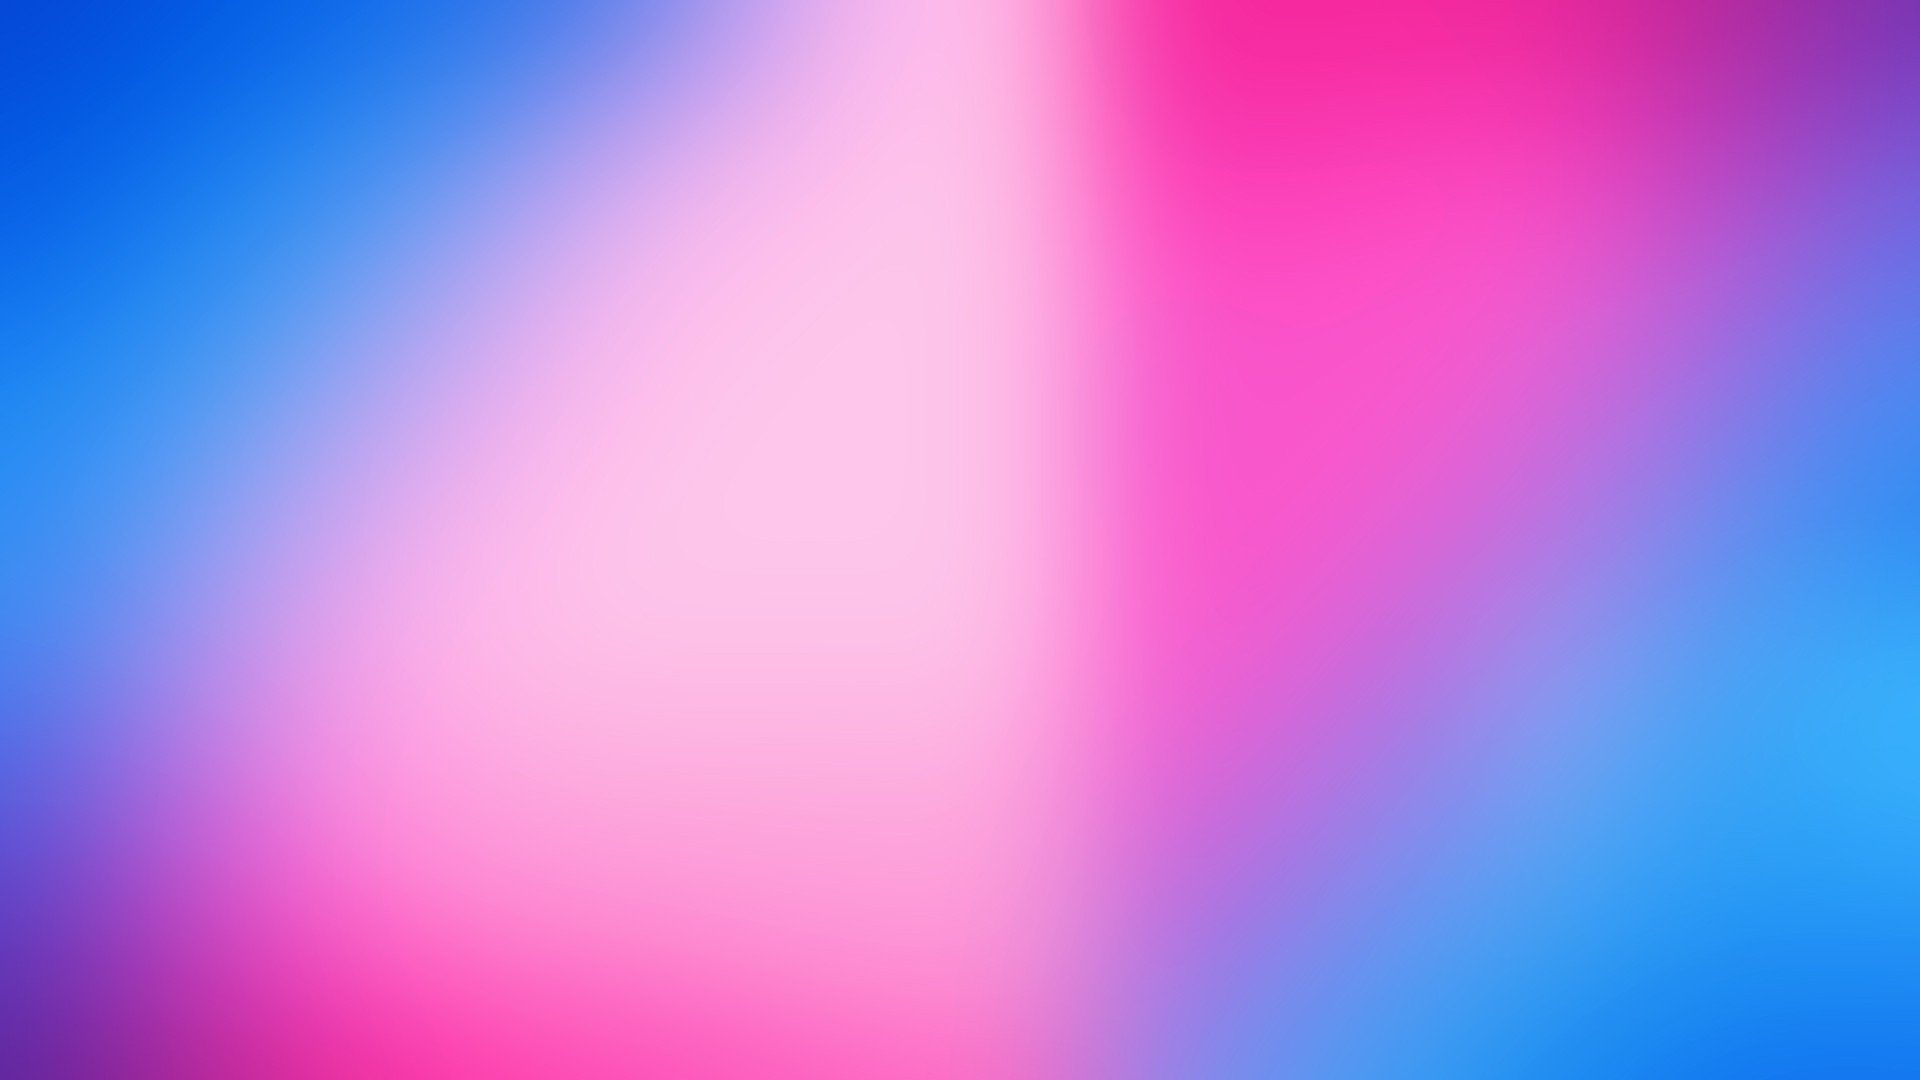 Wallpaper Abstract, pink blue gradient